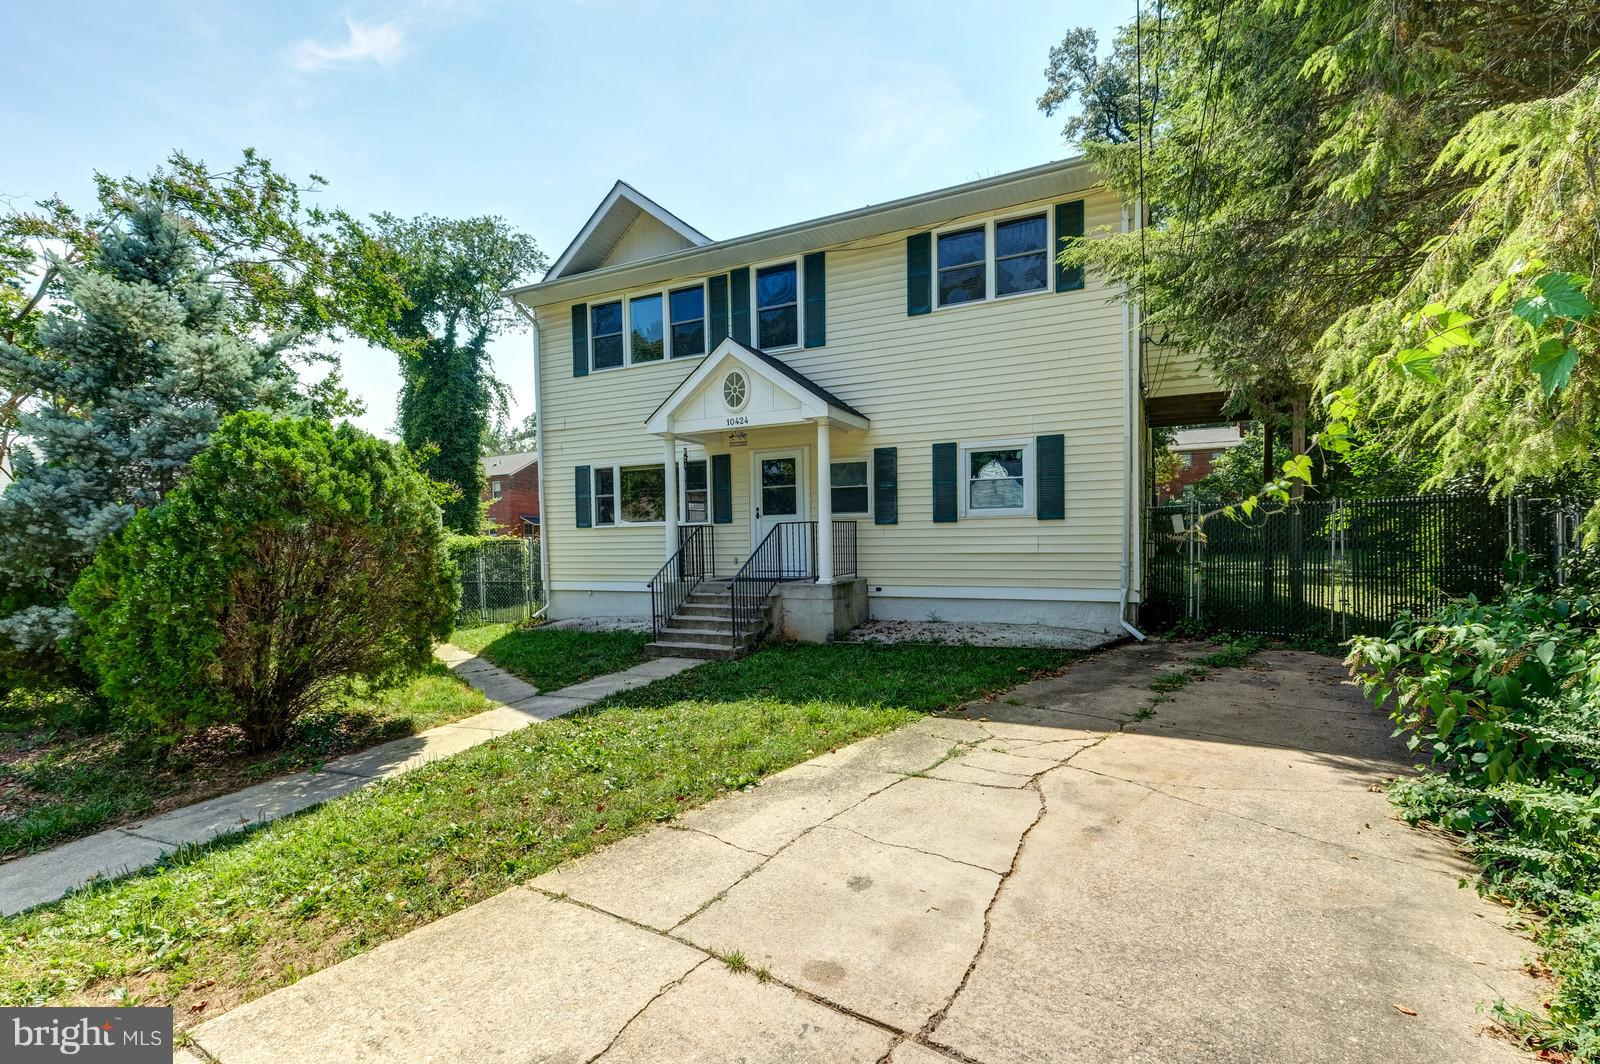 10424 JULEP AVENUE, SILVER SPRING, MD 20902